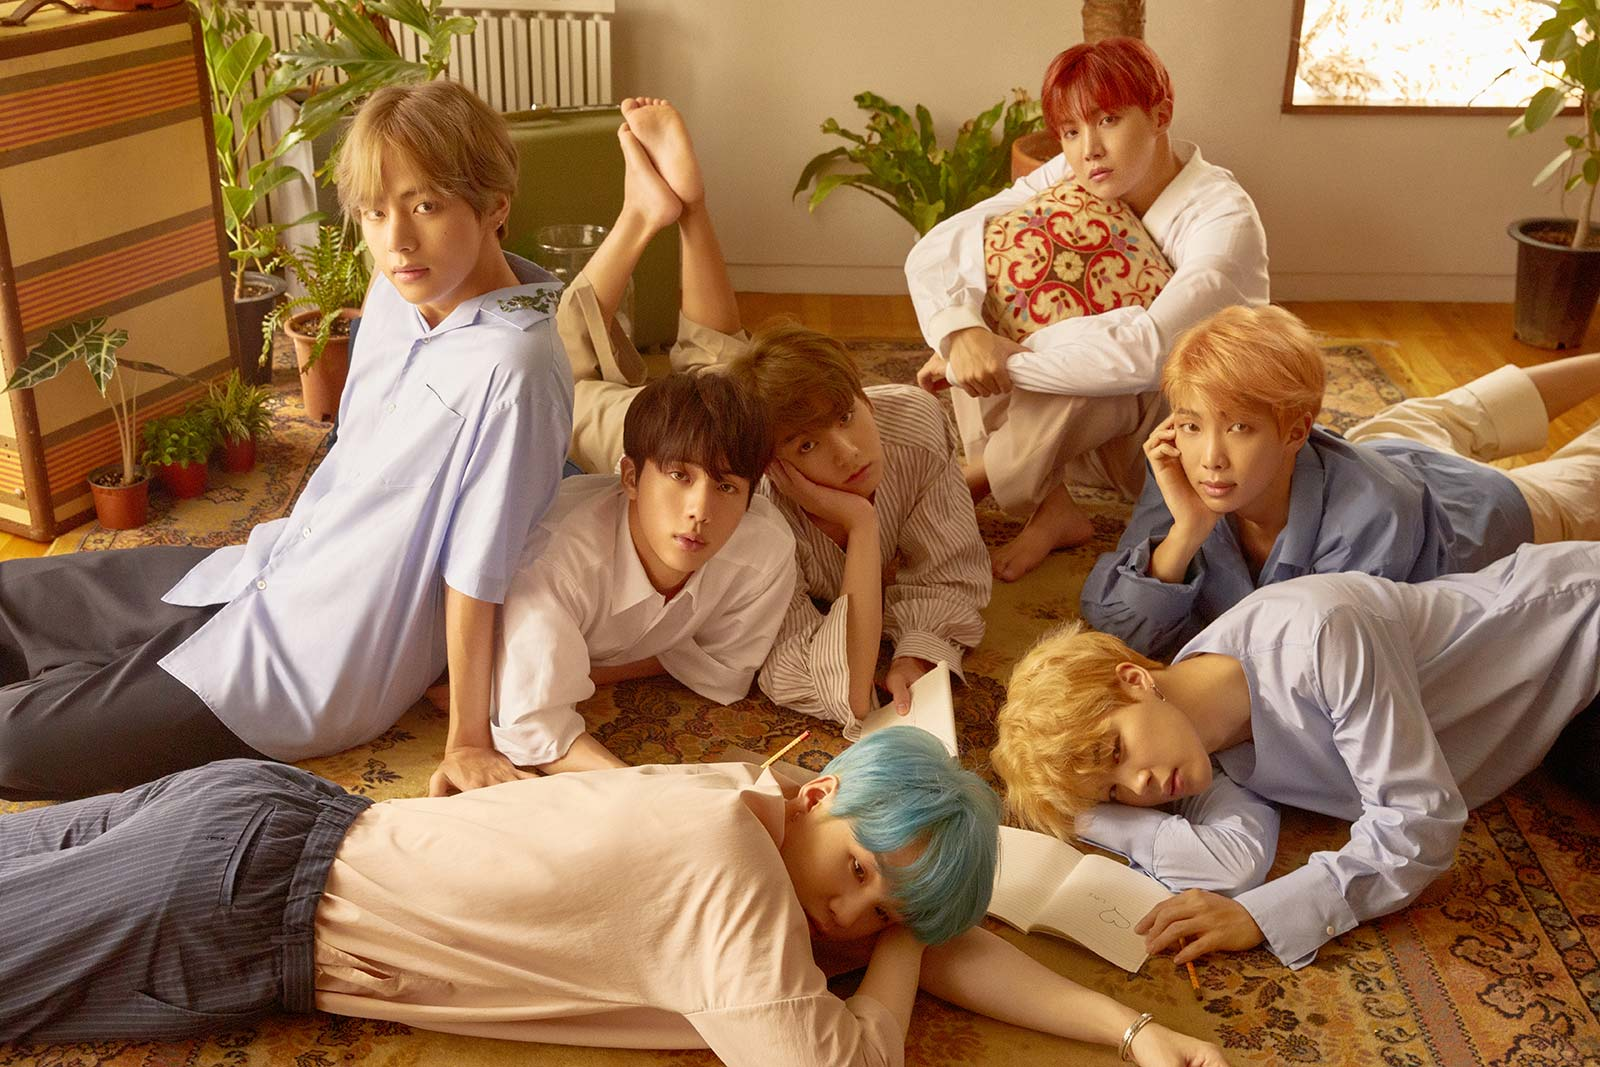 Global Pop Sensations BTS Drop New Album & 'DNA' Music Video